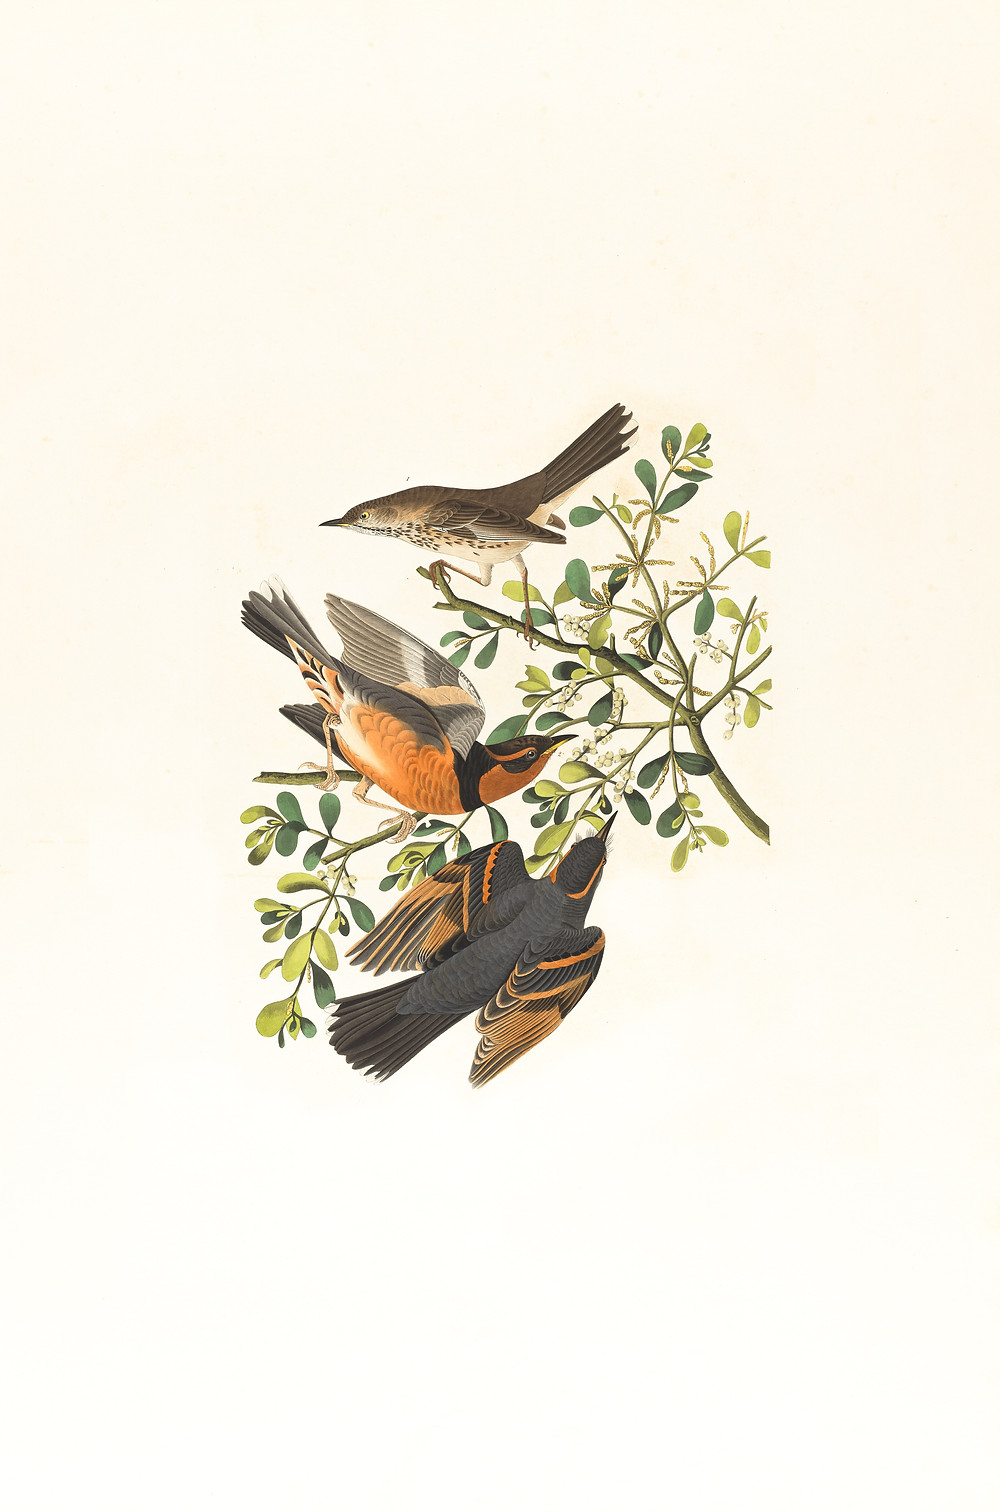 Even the sparrows, have a place to lay their head. So why should I let worry steal my breath?